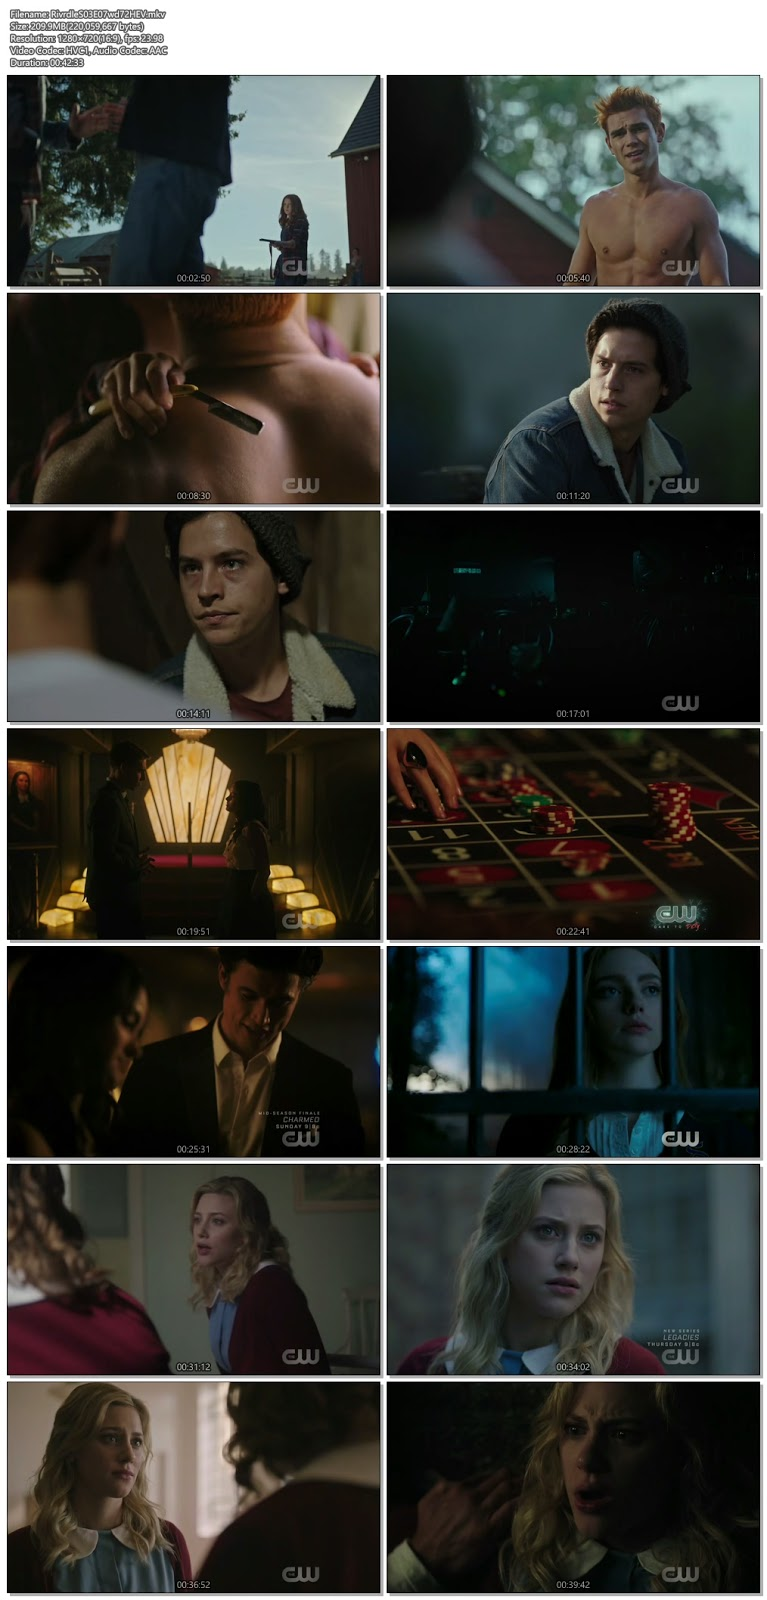 Riverdale S03 Episode 07 720p HDTV 200MB Download , hollwood tv series Riverdale S03  Download Episode 07 720p hdtv TV SHOW hevc x265 hdrip 200mb 250mb free download or watch online at world4ufree.fun